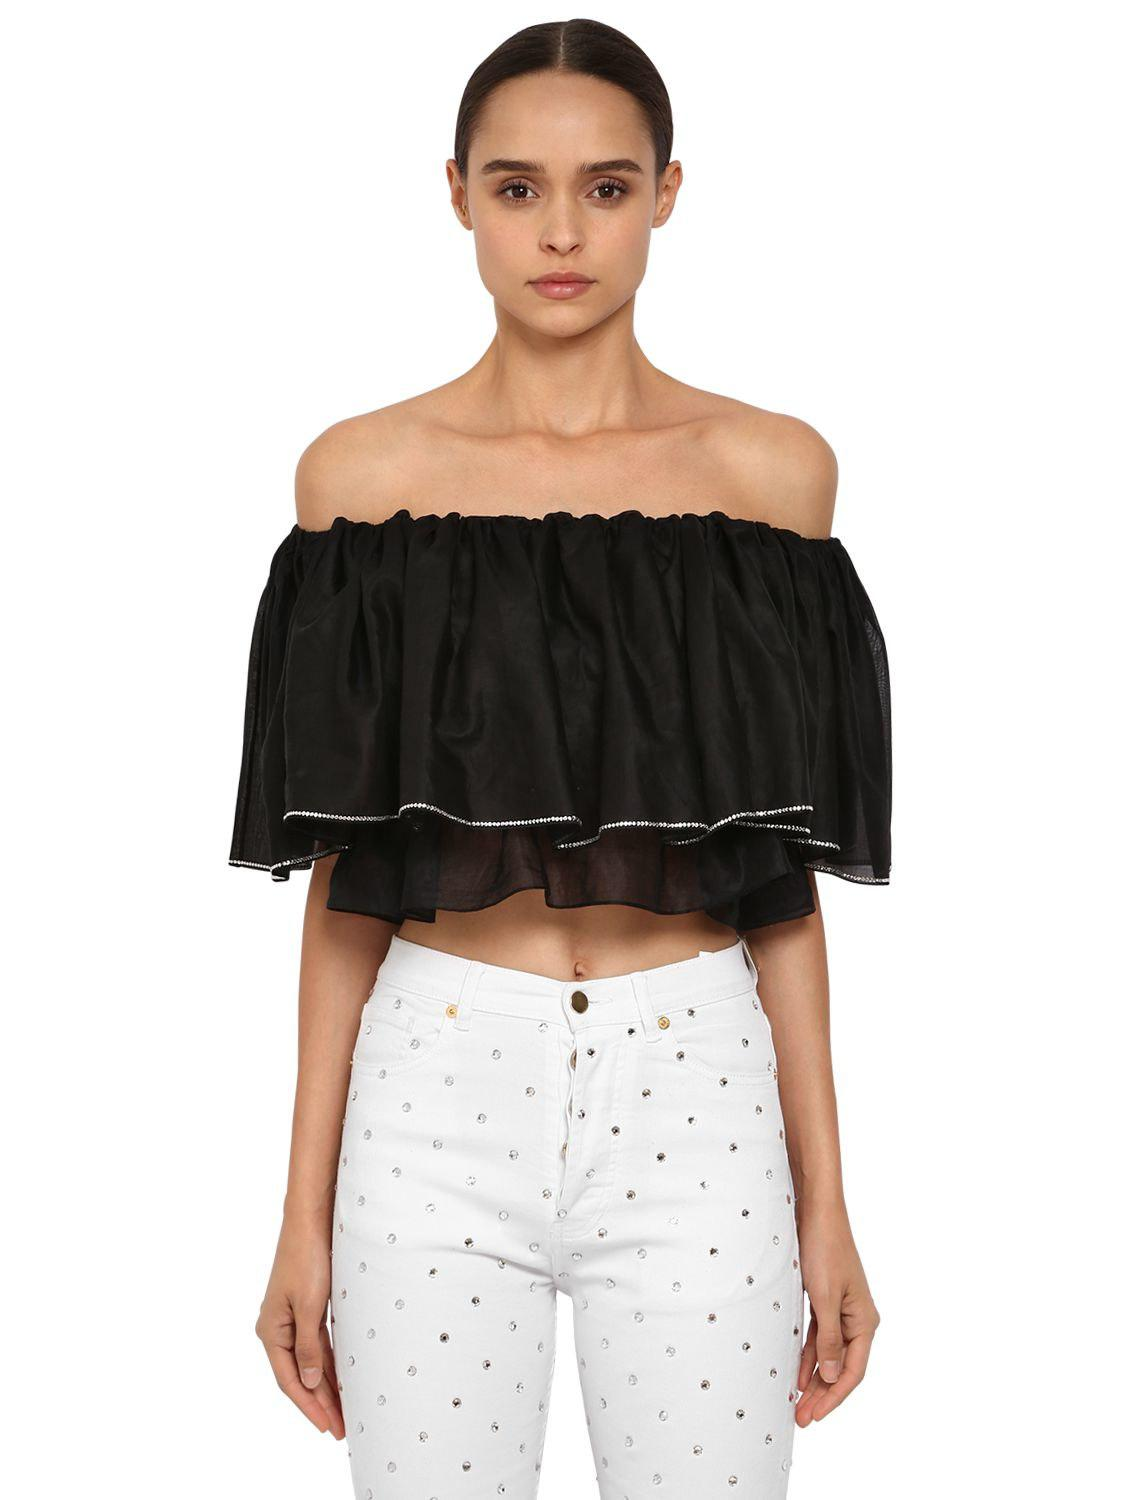 abc2b8395f575 Lyst - Alexandre Vauthier Crystal Off The Shoulder Cotton Top in Black